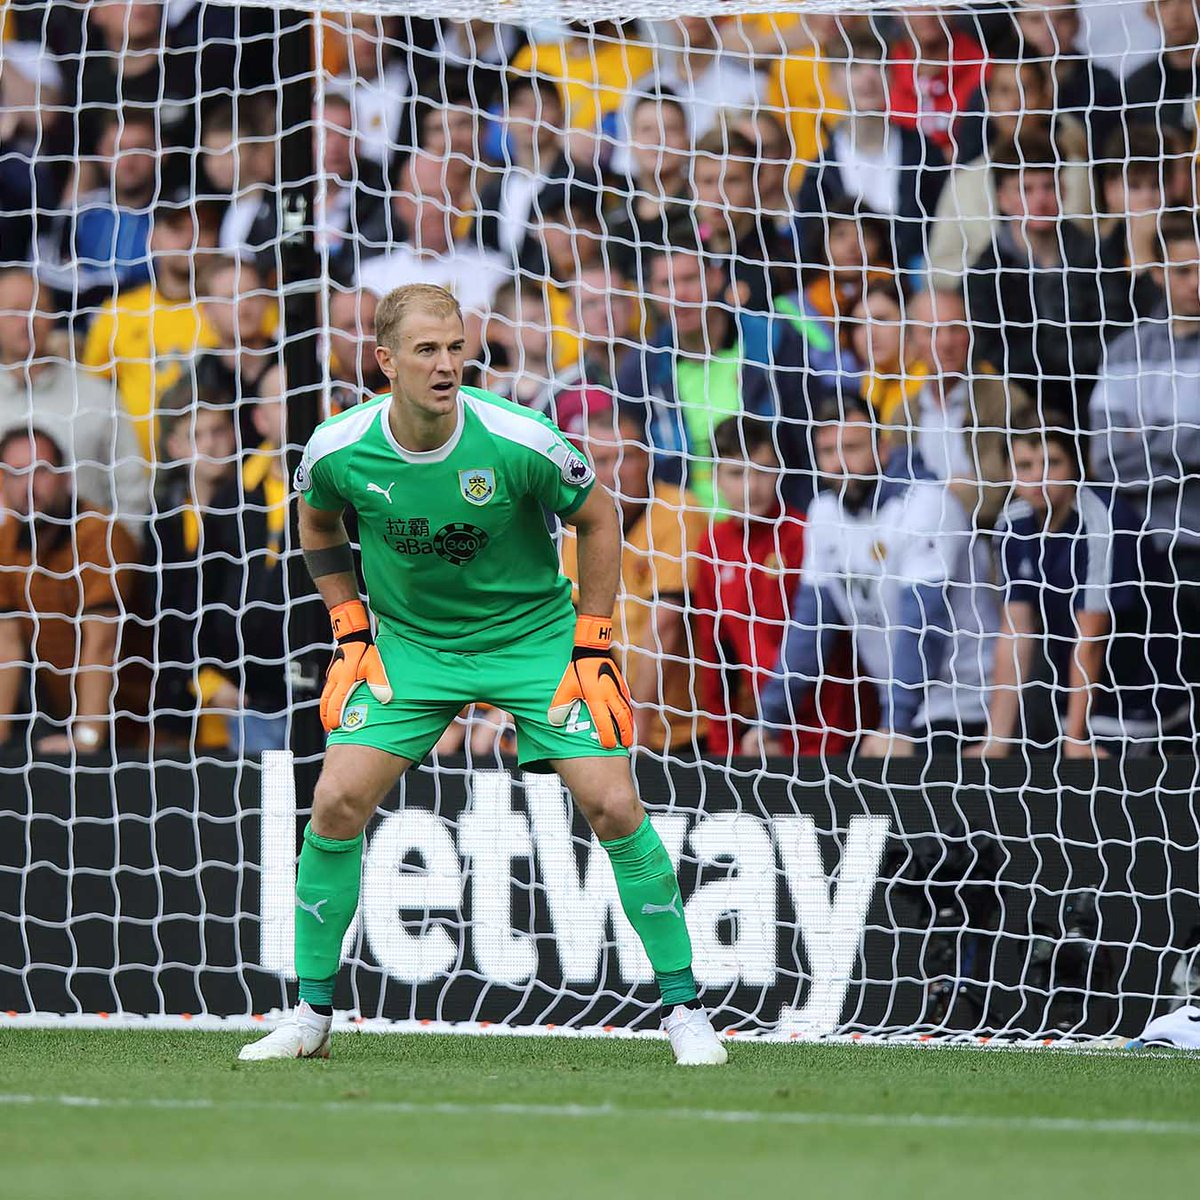 A great touch from @BurnleyOfficial goalkeeper, Joe Hart, on Sunday as he makes a young Wolves goalkeepers day. 👏👏